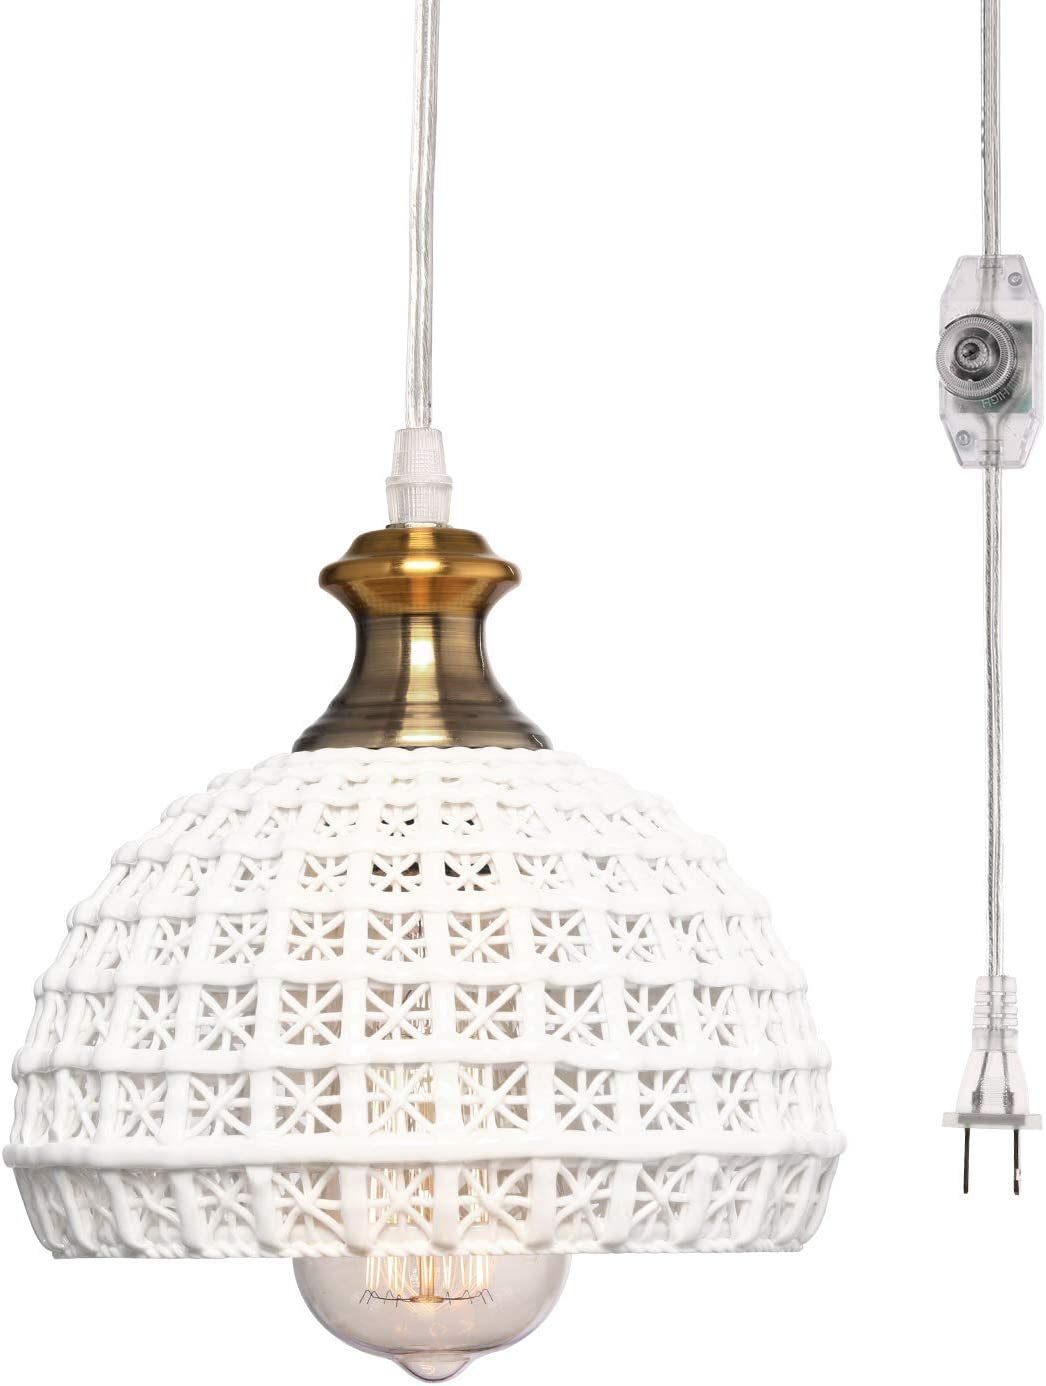 HMVPL Ceramic Plug in Pendant Light Fixture, Unique Swag Ceiling Lamp with 16.4 Ft Hanging Cord and On Off Dimmable Switch for Kitchen Island Table Dining Room Bedroom Entryway 6.9 inches